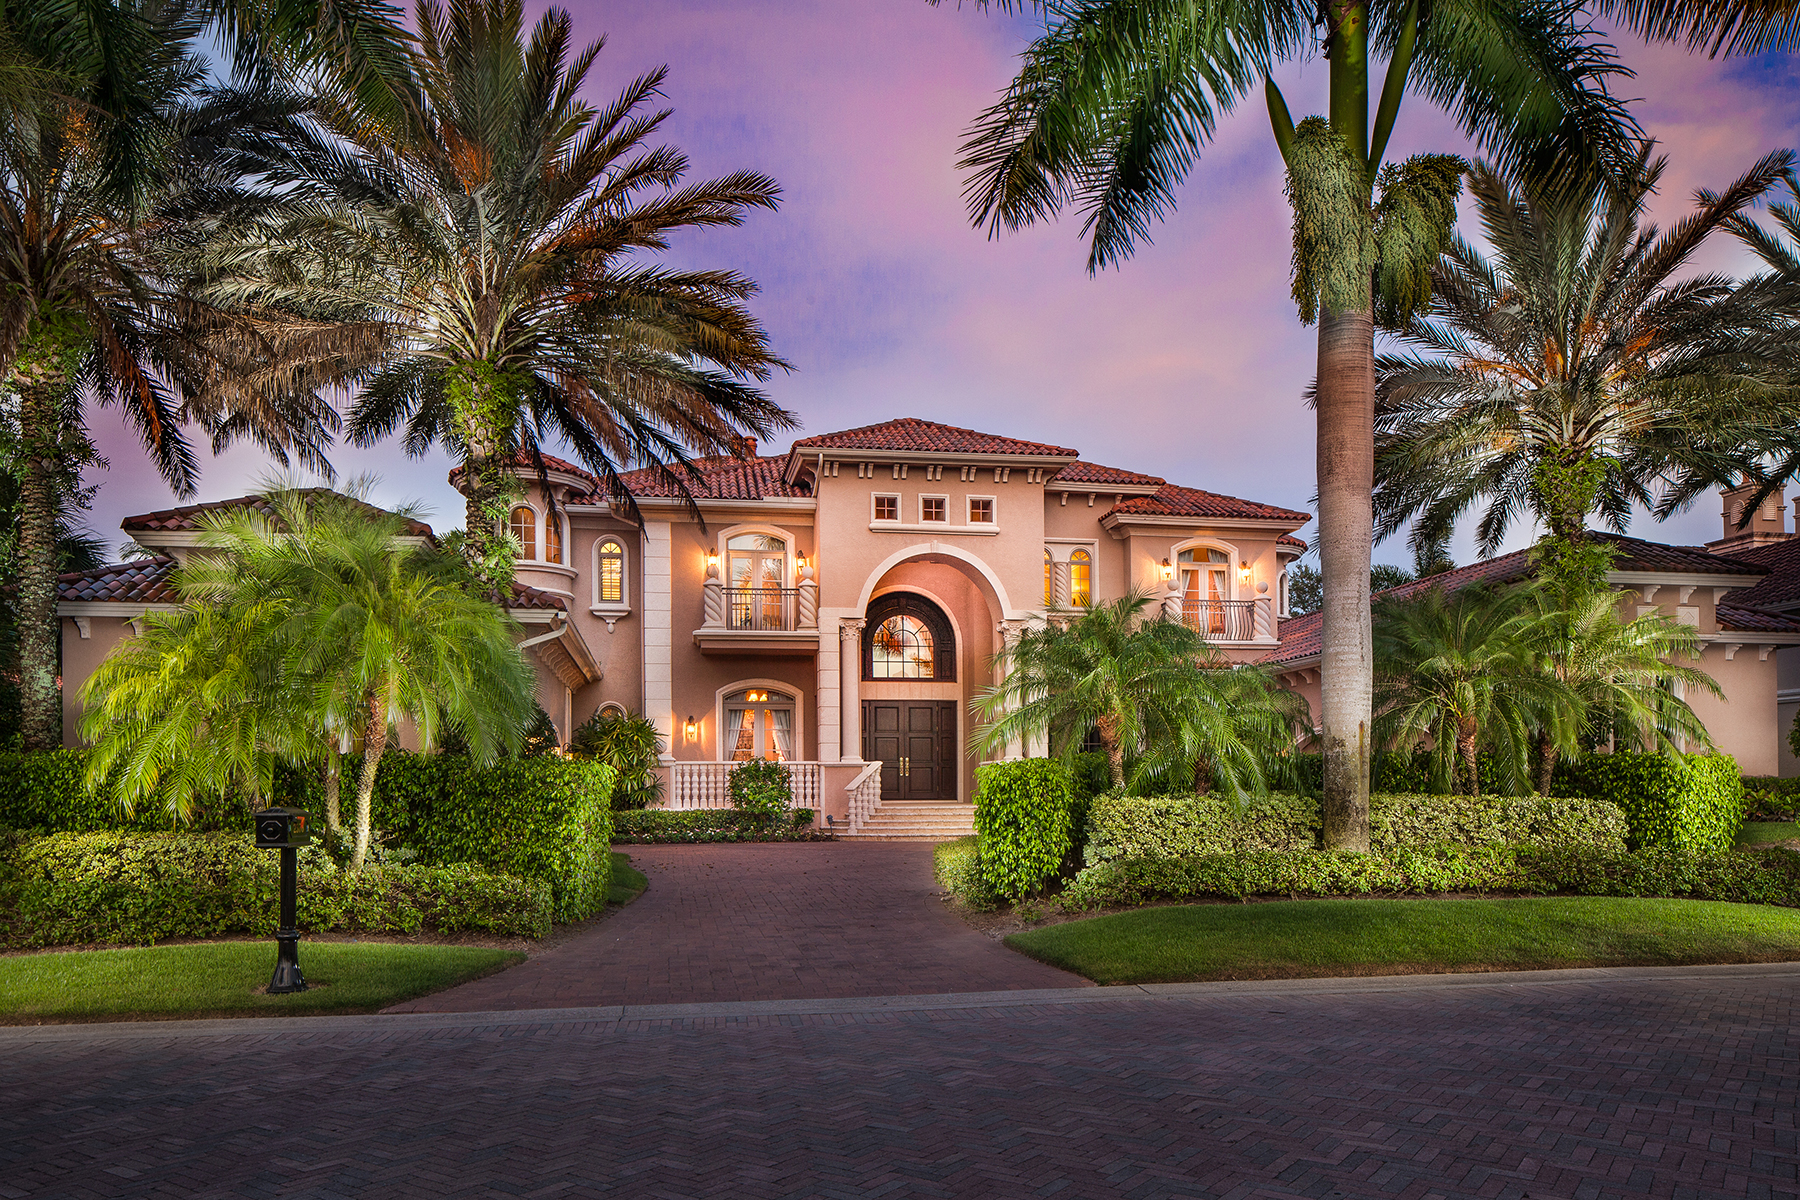 Casa Unifamiliar por un Venta en ESCADA AT TIBURON 2576 Escada Dr Naples, Florida, 34109 Estados Unidos